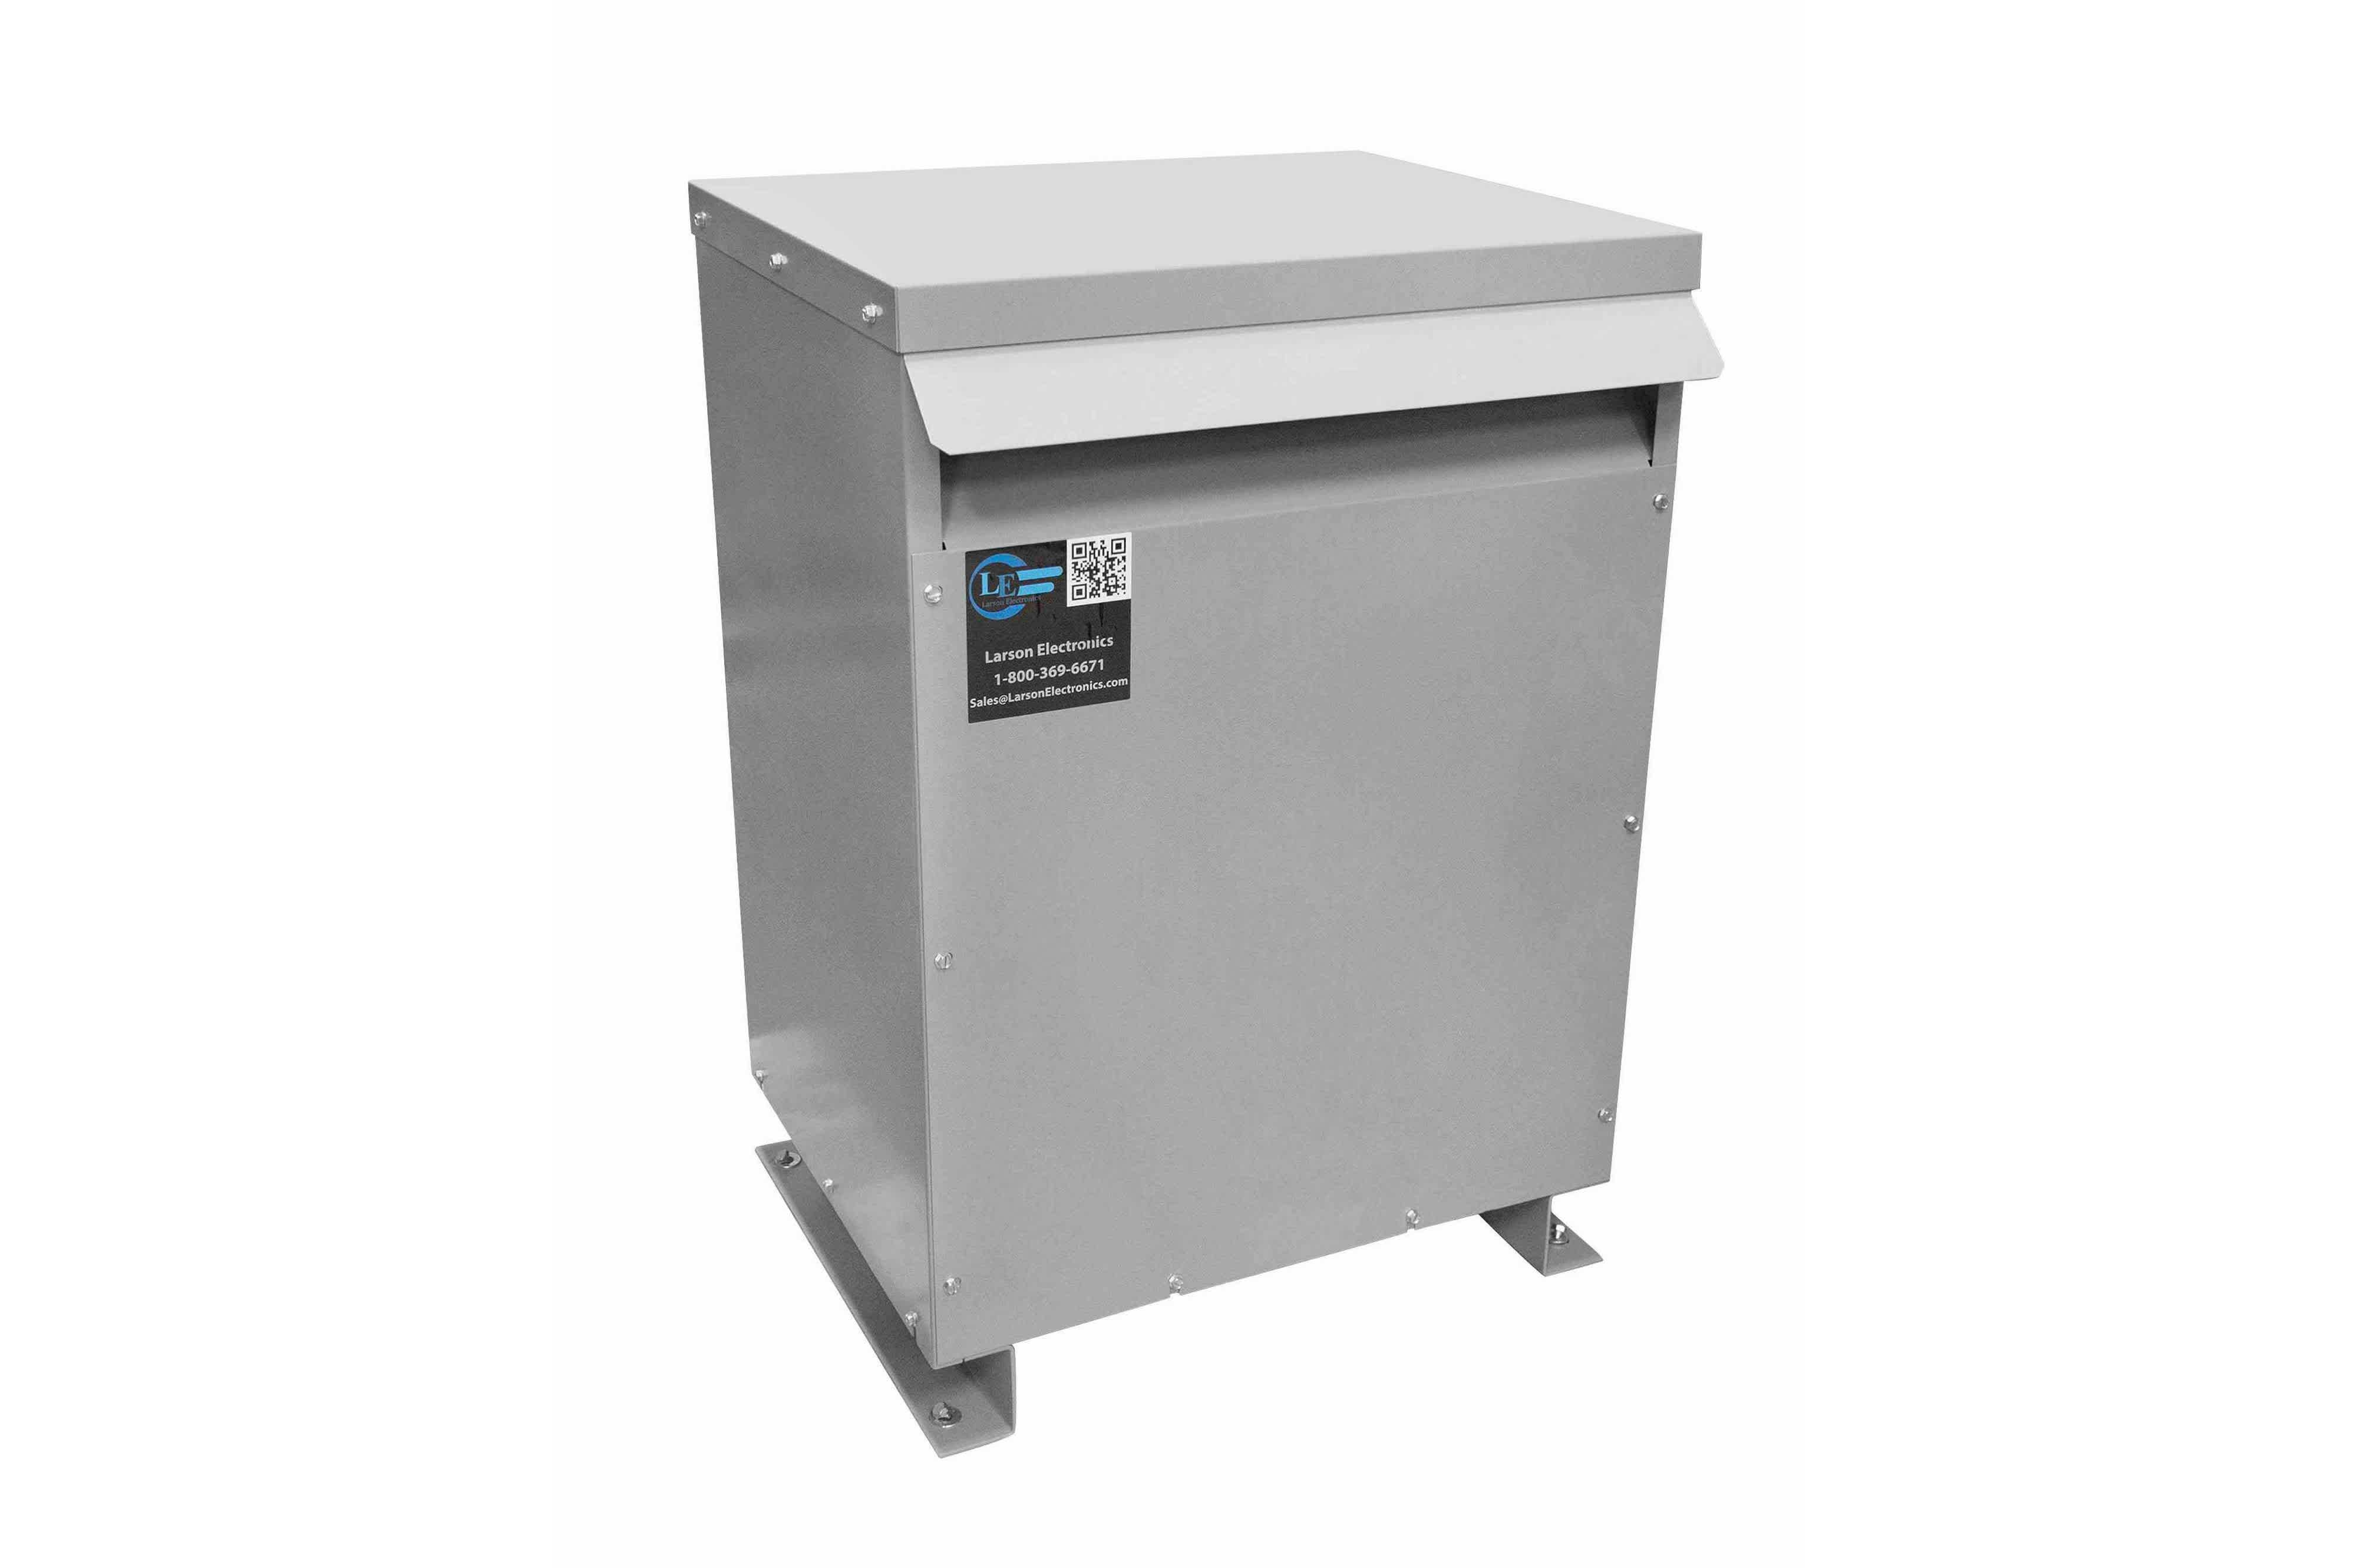 700 kVA 3PH Isolation Transformer, 600V Wye Primary, 380Y/220 Wye-N Secondary, N3R, Ventilated, 60 Hz